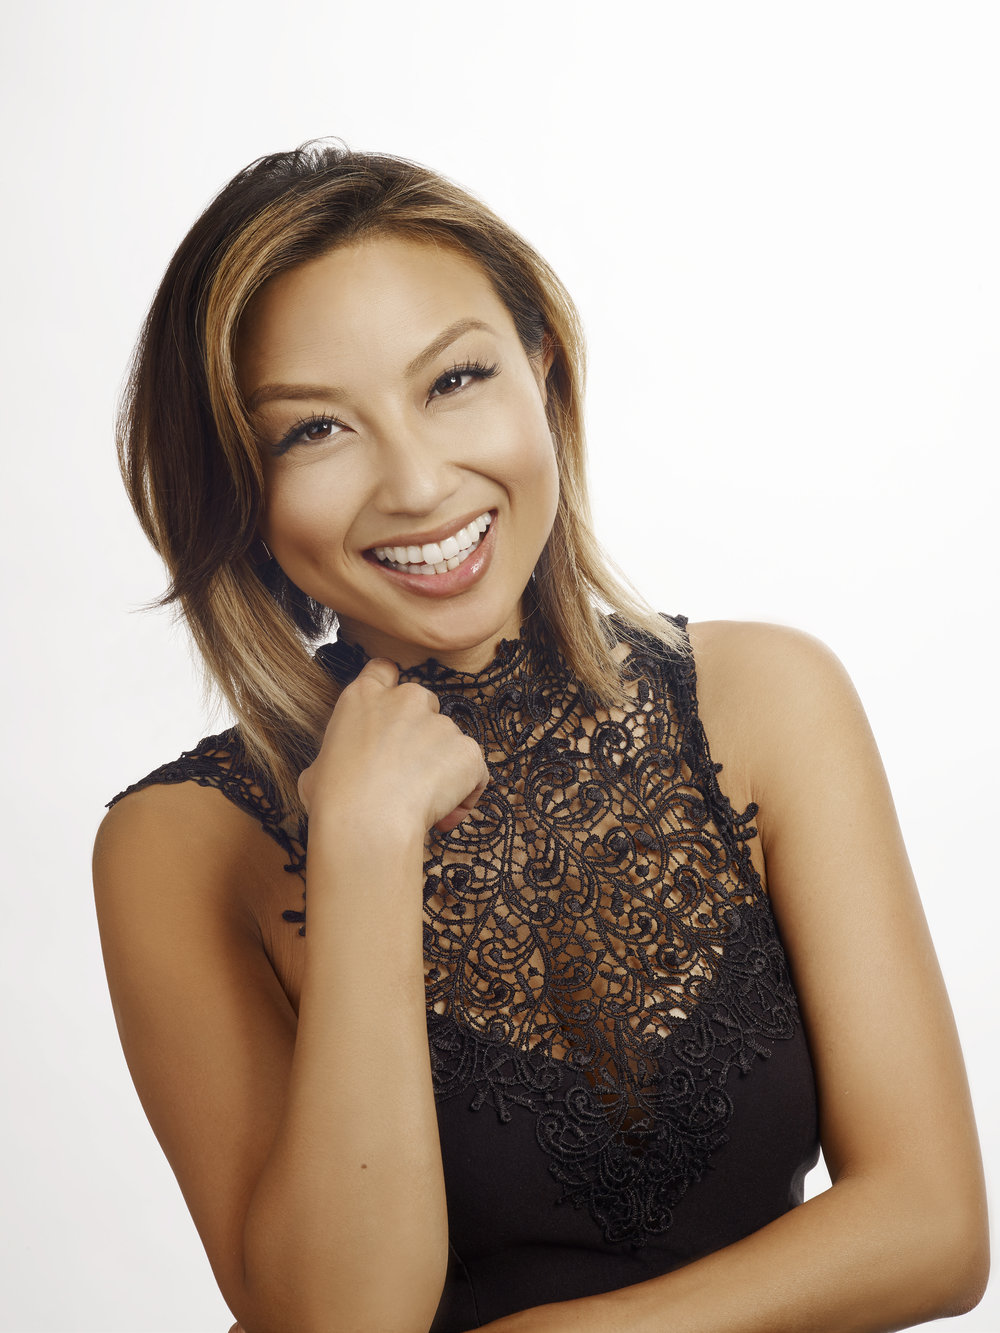 MORE: Style Expert Jeannie Mai Spills 5 Clever Holiday GiftingTips